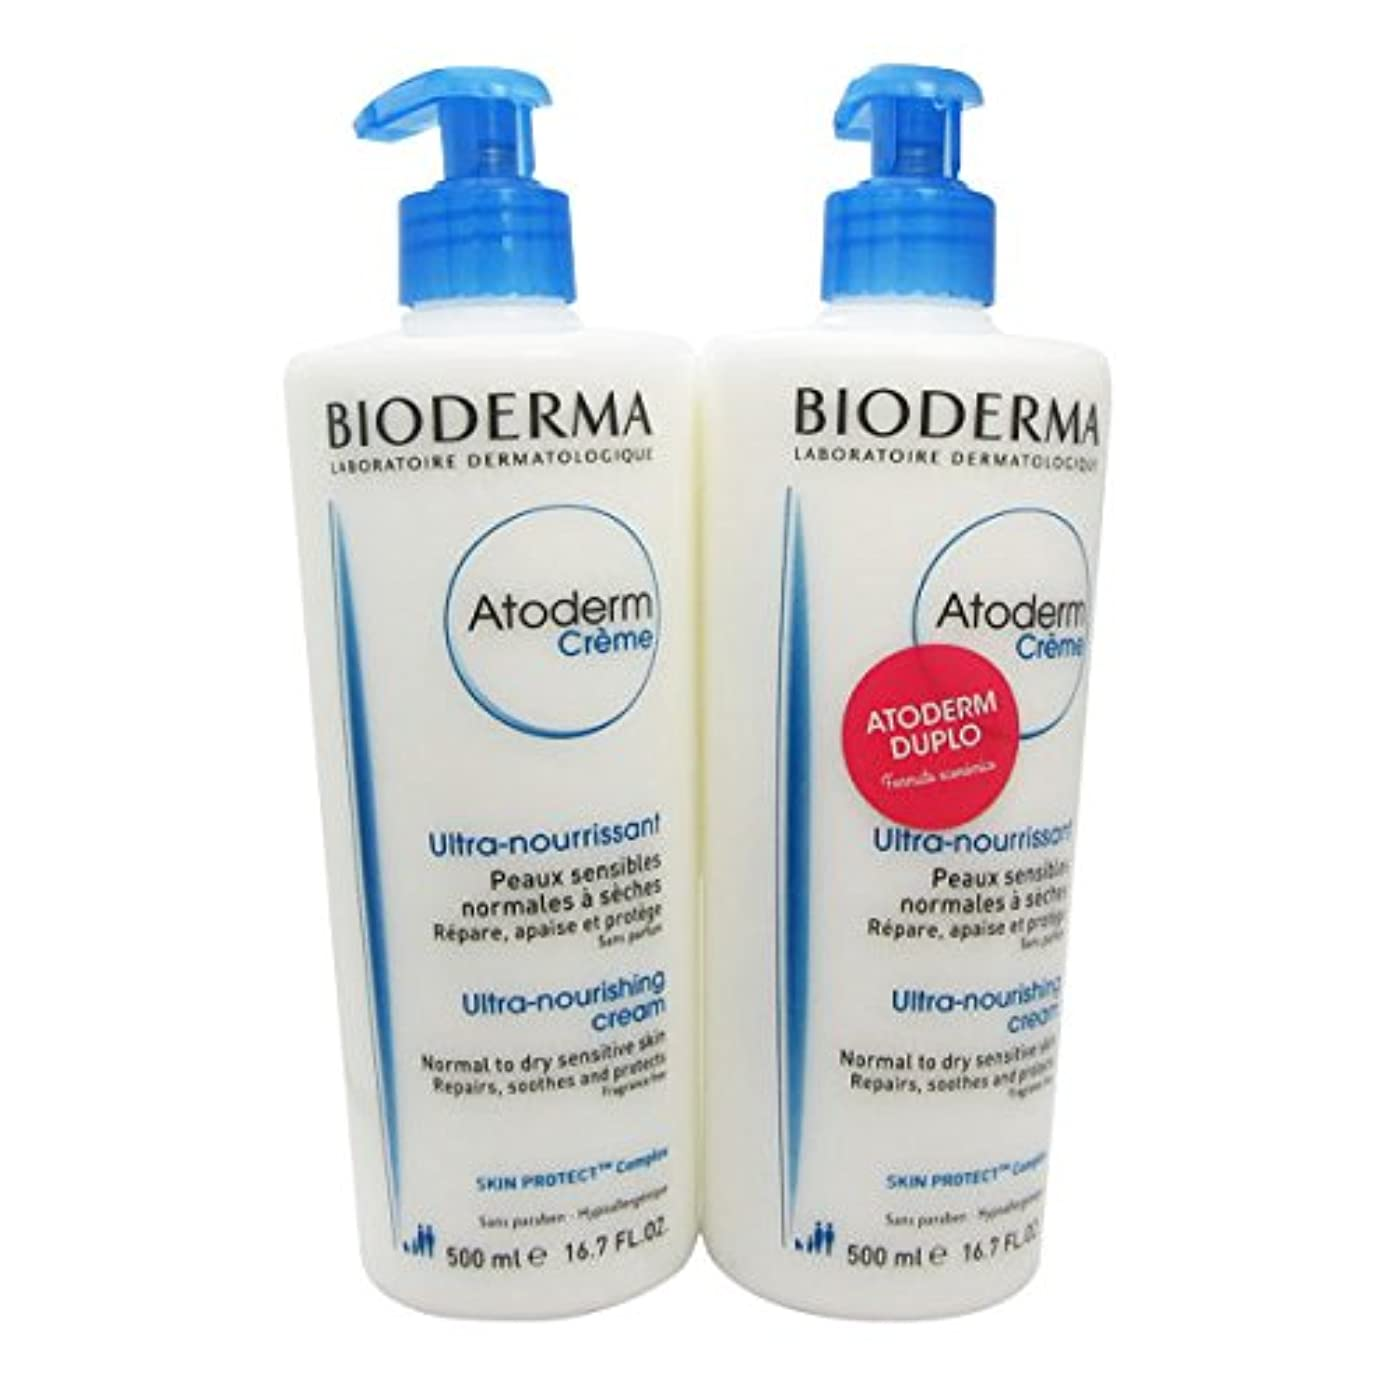 Bioderma Atoderm Nourishing Cream 2x500ml [並行輸入品]